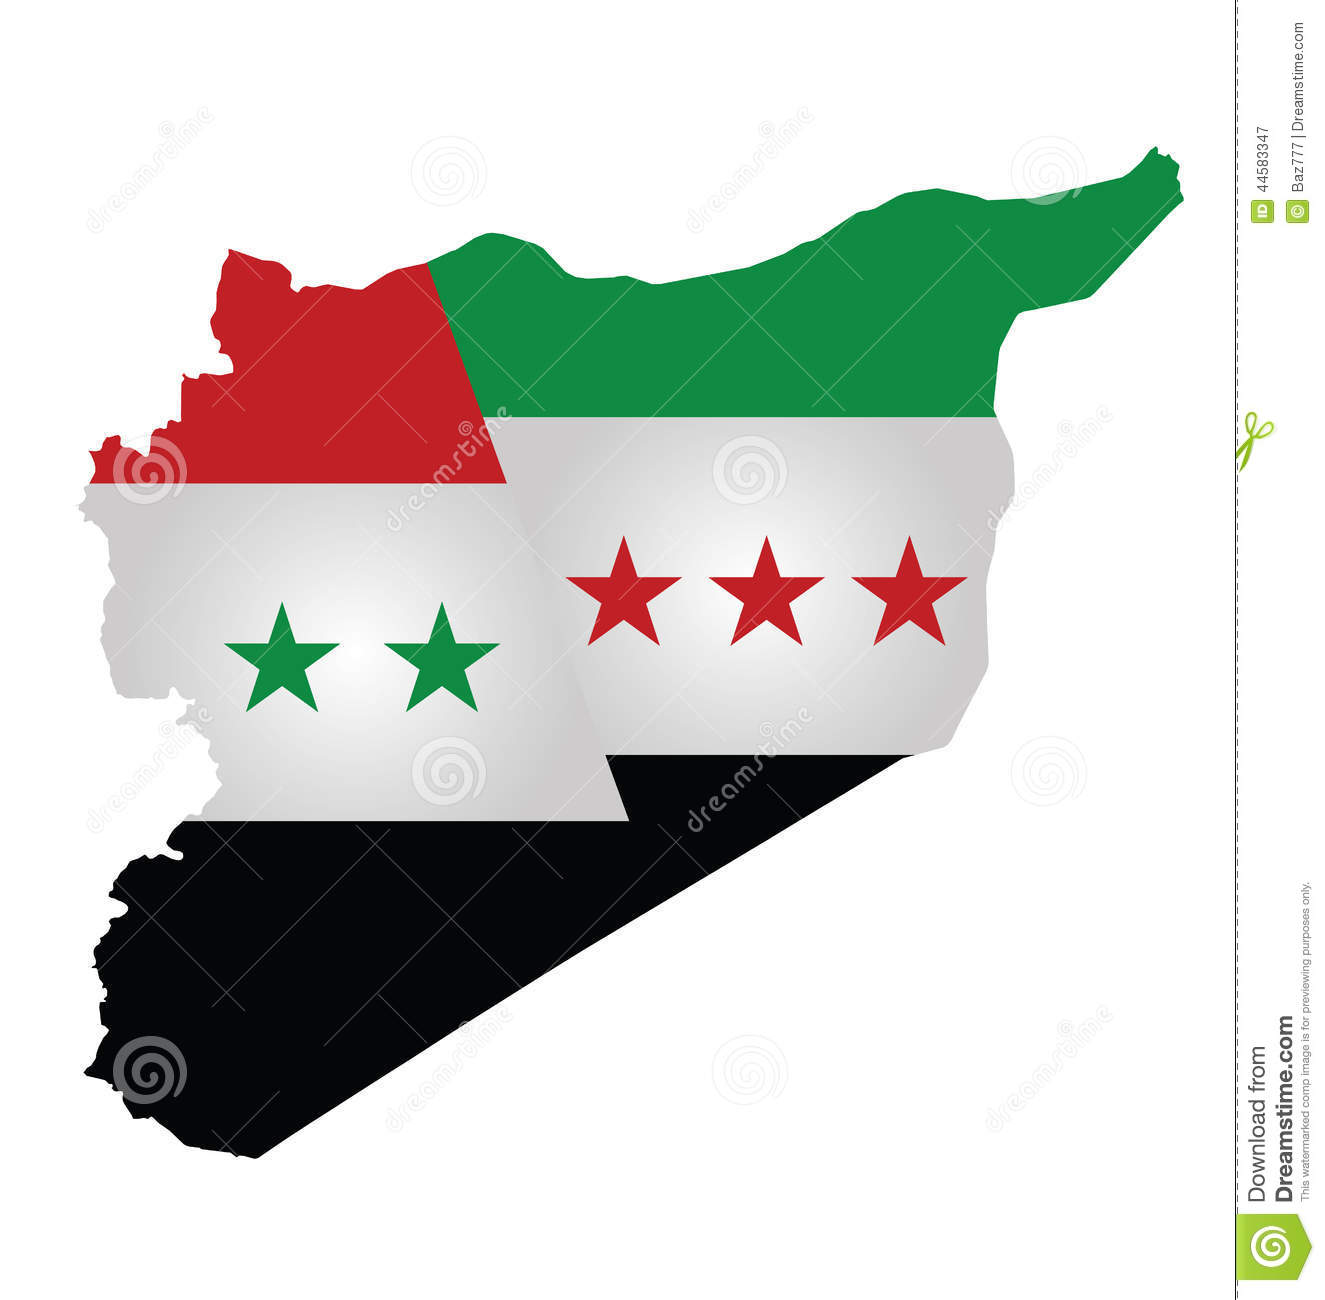 map of syria with Stock Abbildung Syrische Flagge Image44583347 on Russia Turkey Push Safe Zones Syria 170504053138097 as well Ad250 moreover Quiraing likewise Image 2810 moreover Stock Abbildung Syrische Flagge Image44583347.